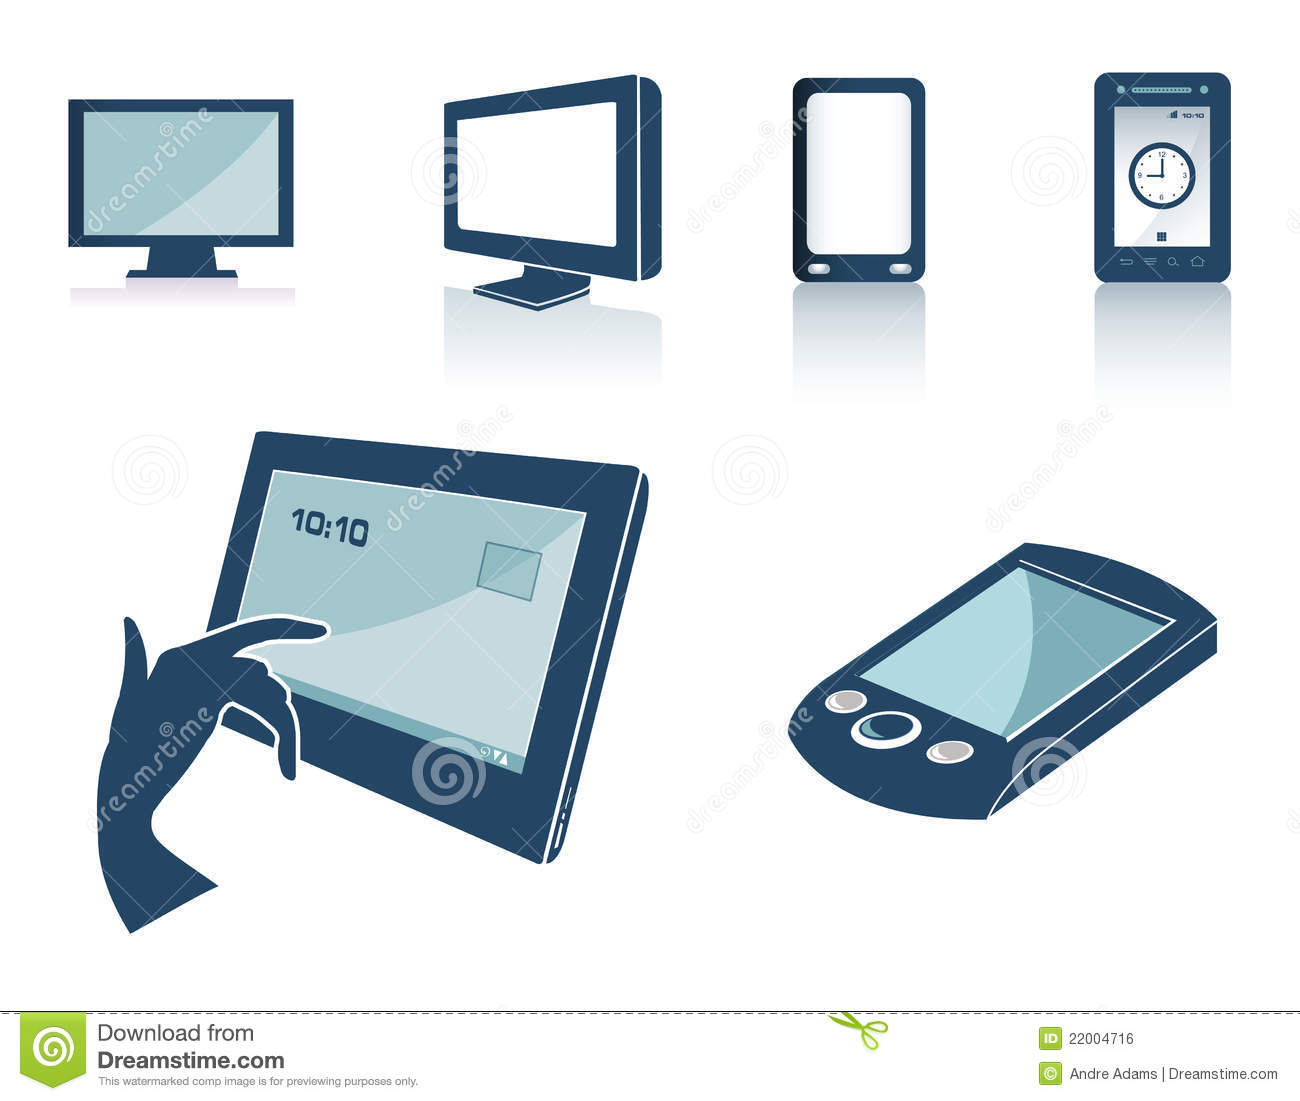 Technology Silhouettes Royalty Free Stock Image - Image ...  Technology Silh...